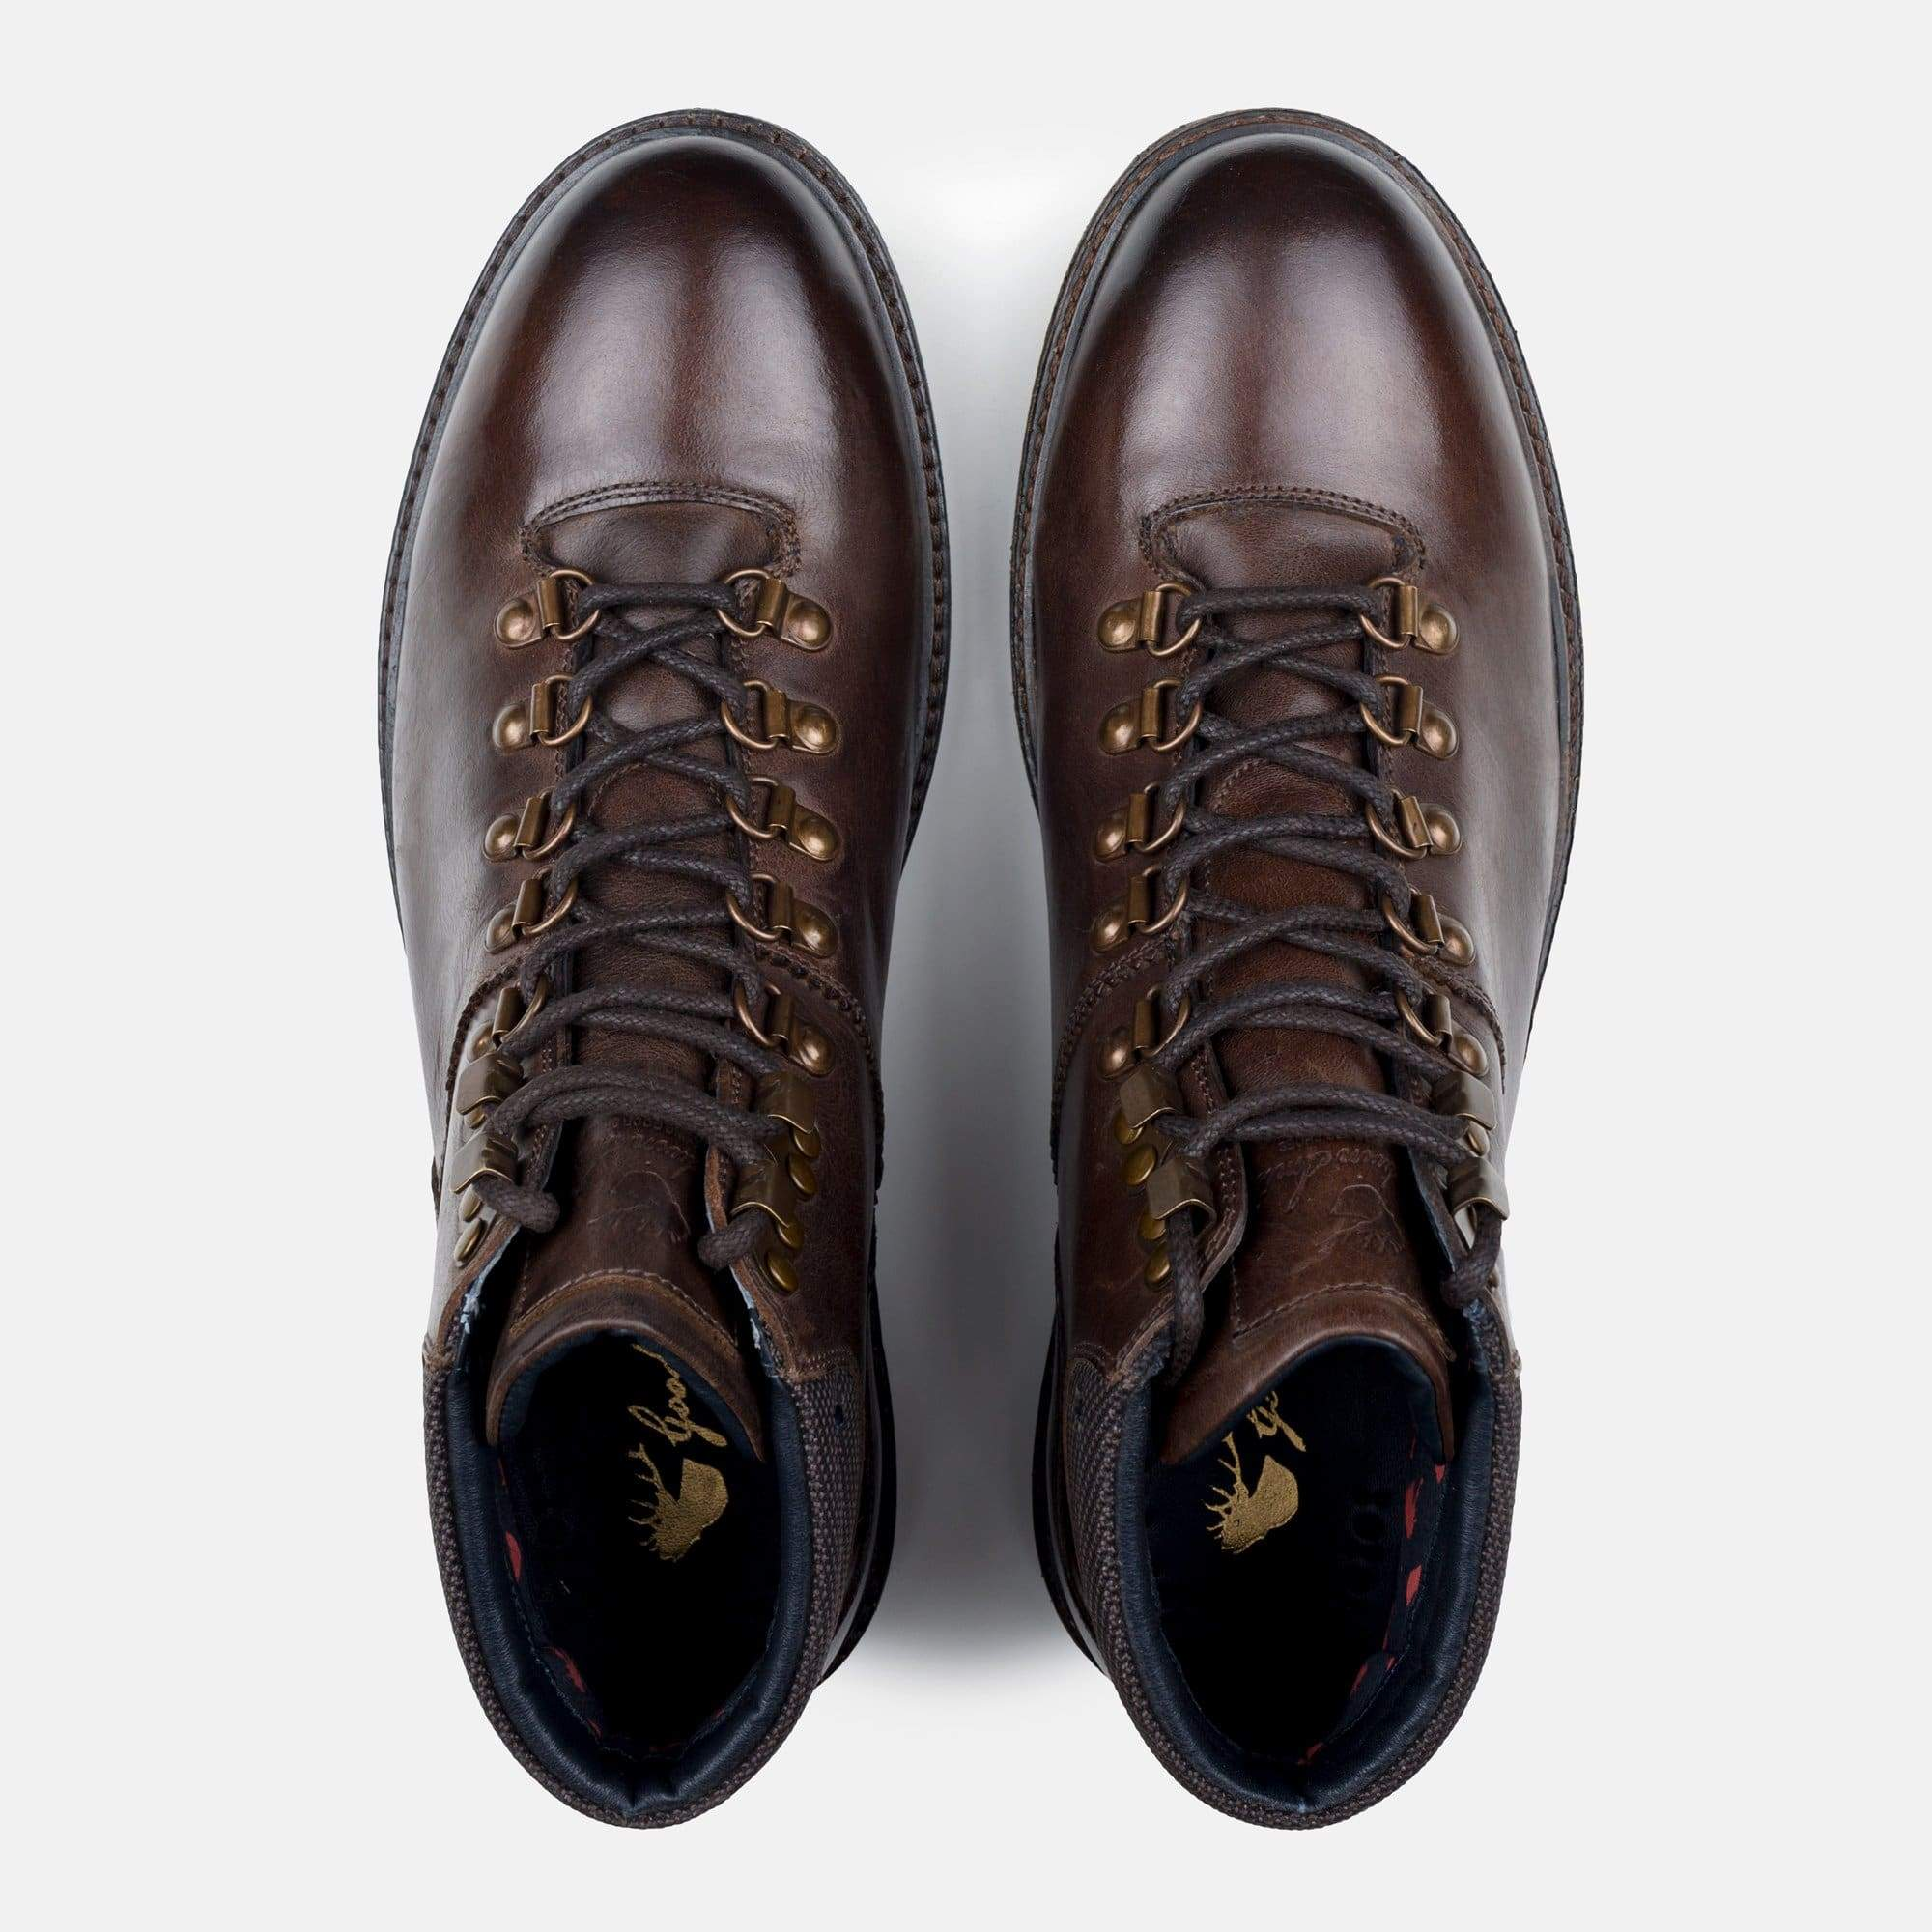 Goodwin Smith Footwear Tremont Brown Hiker Inspired Leather Boot